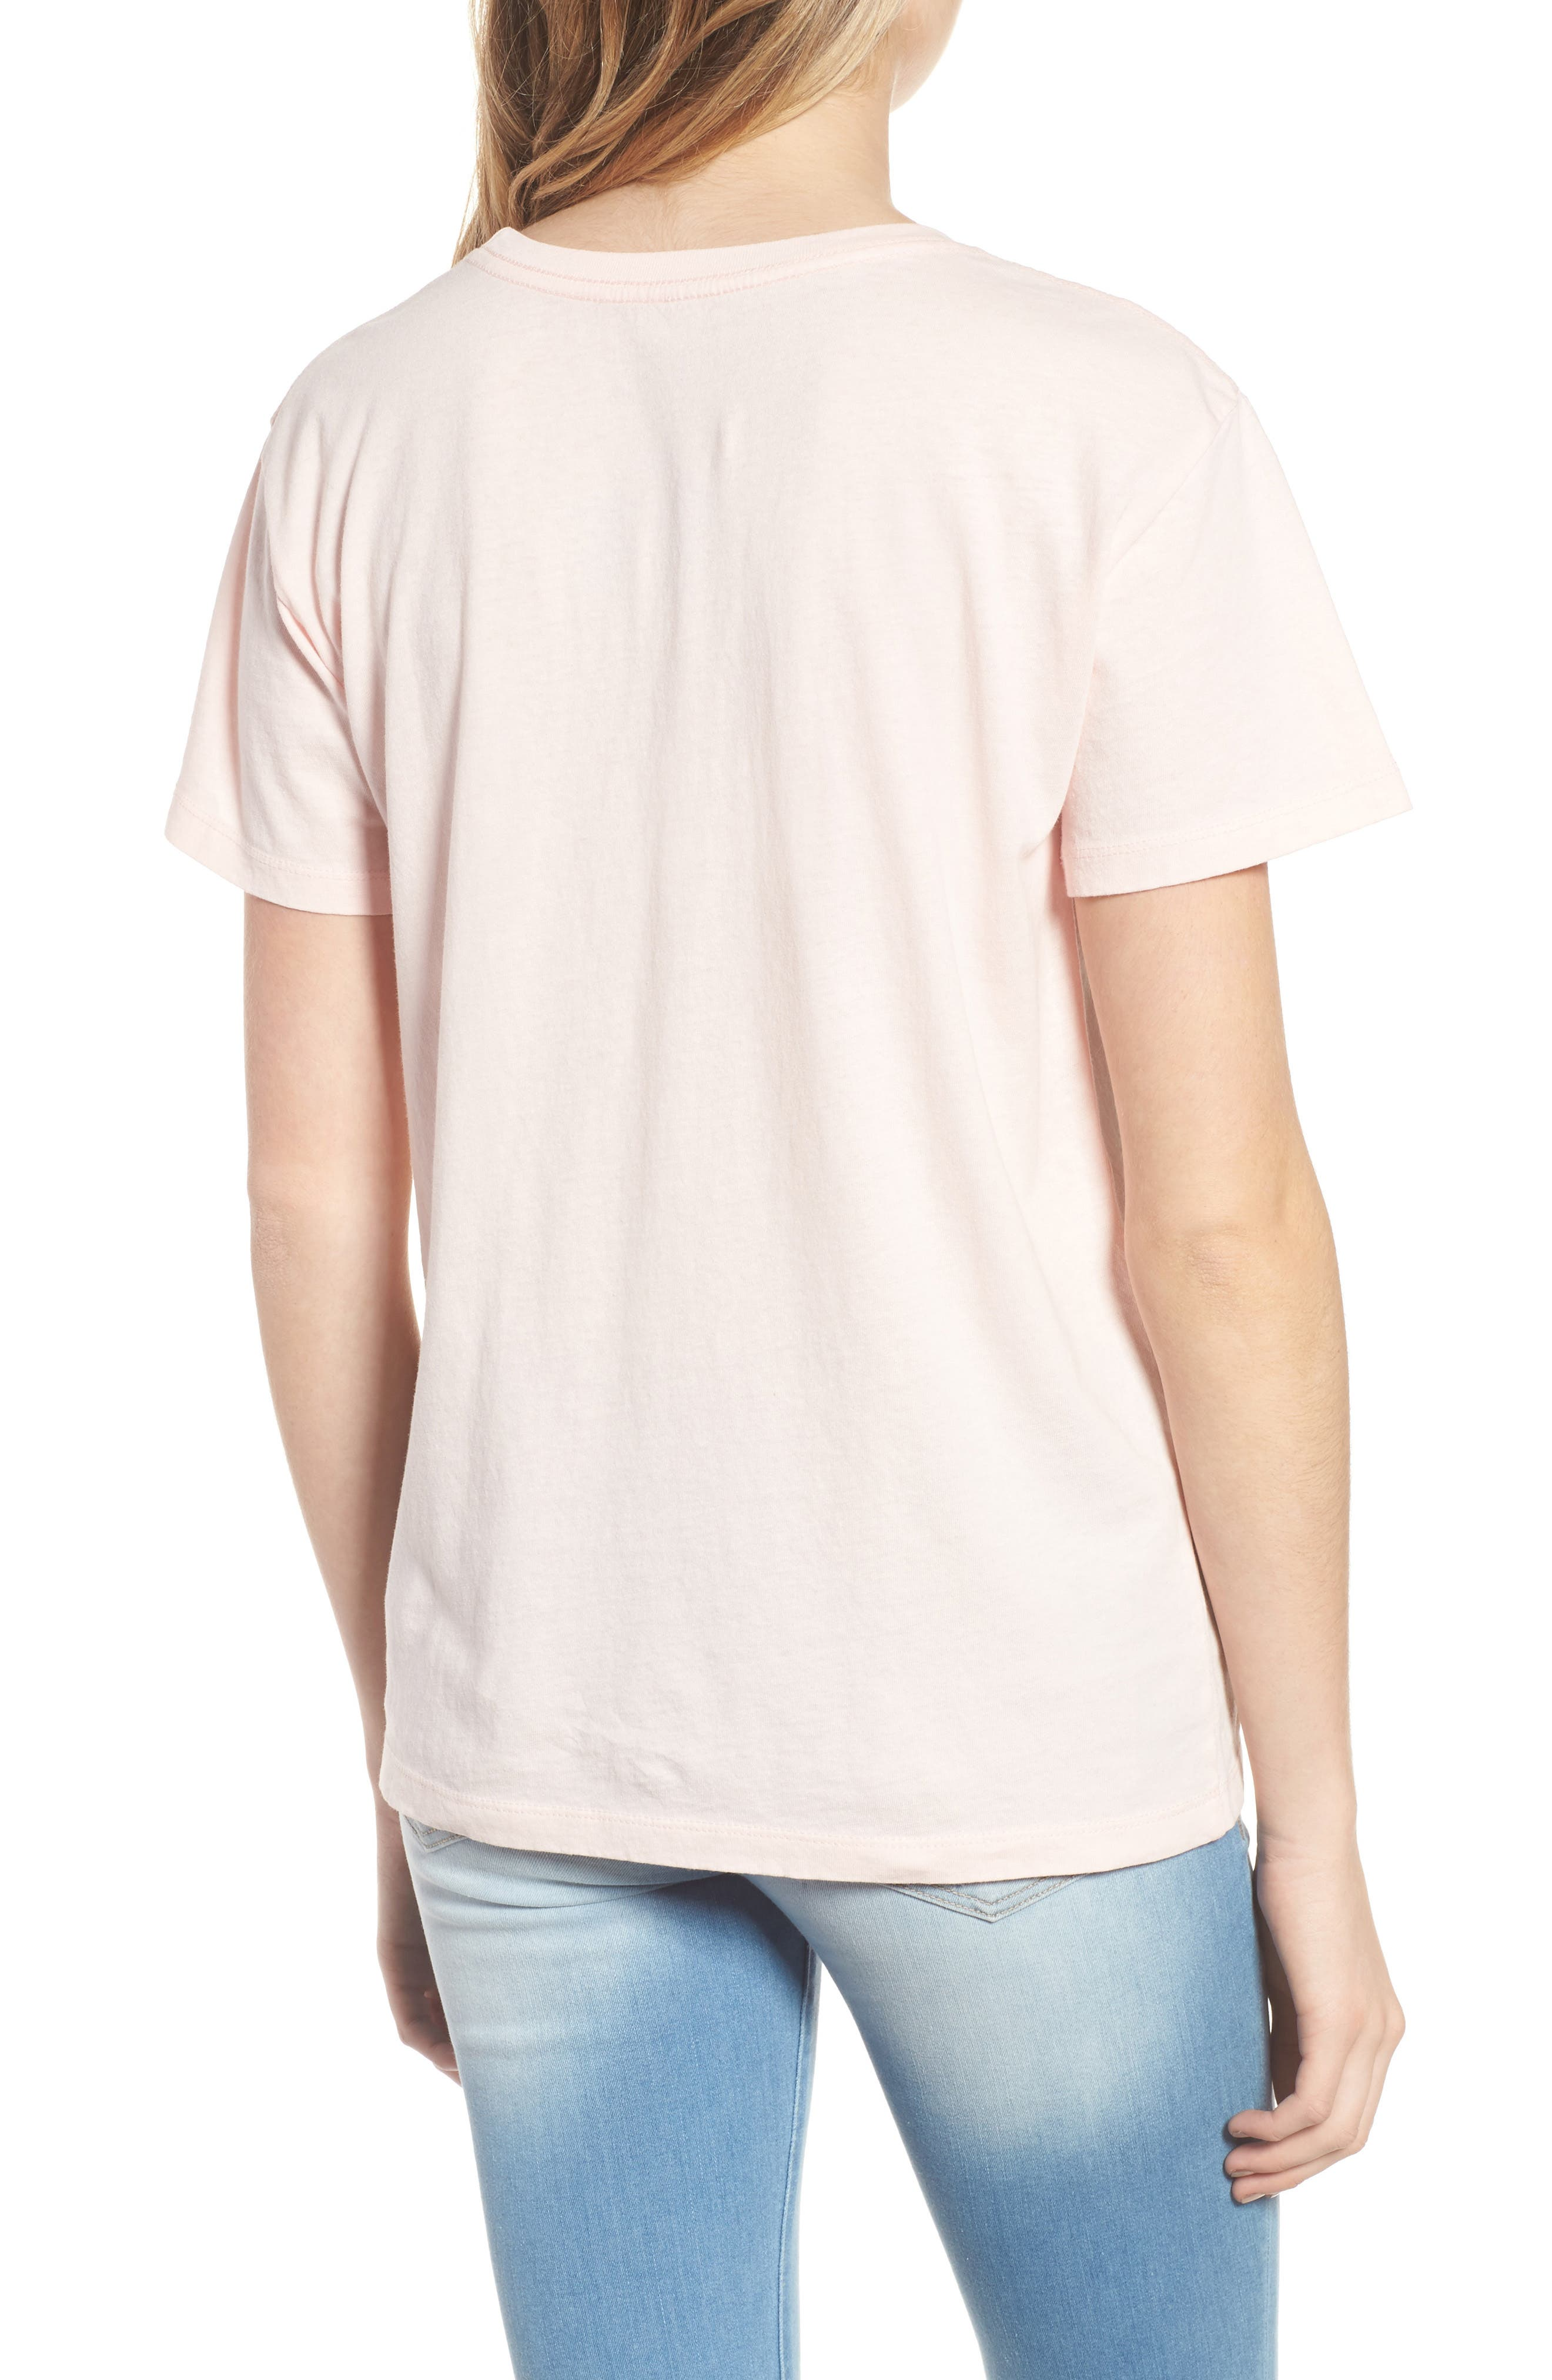 Los Angeles Cotton Boyfriend Tee,                             Alternate thumbnail 2, color,                             Washed Pale Pink